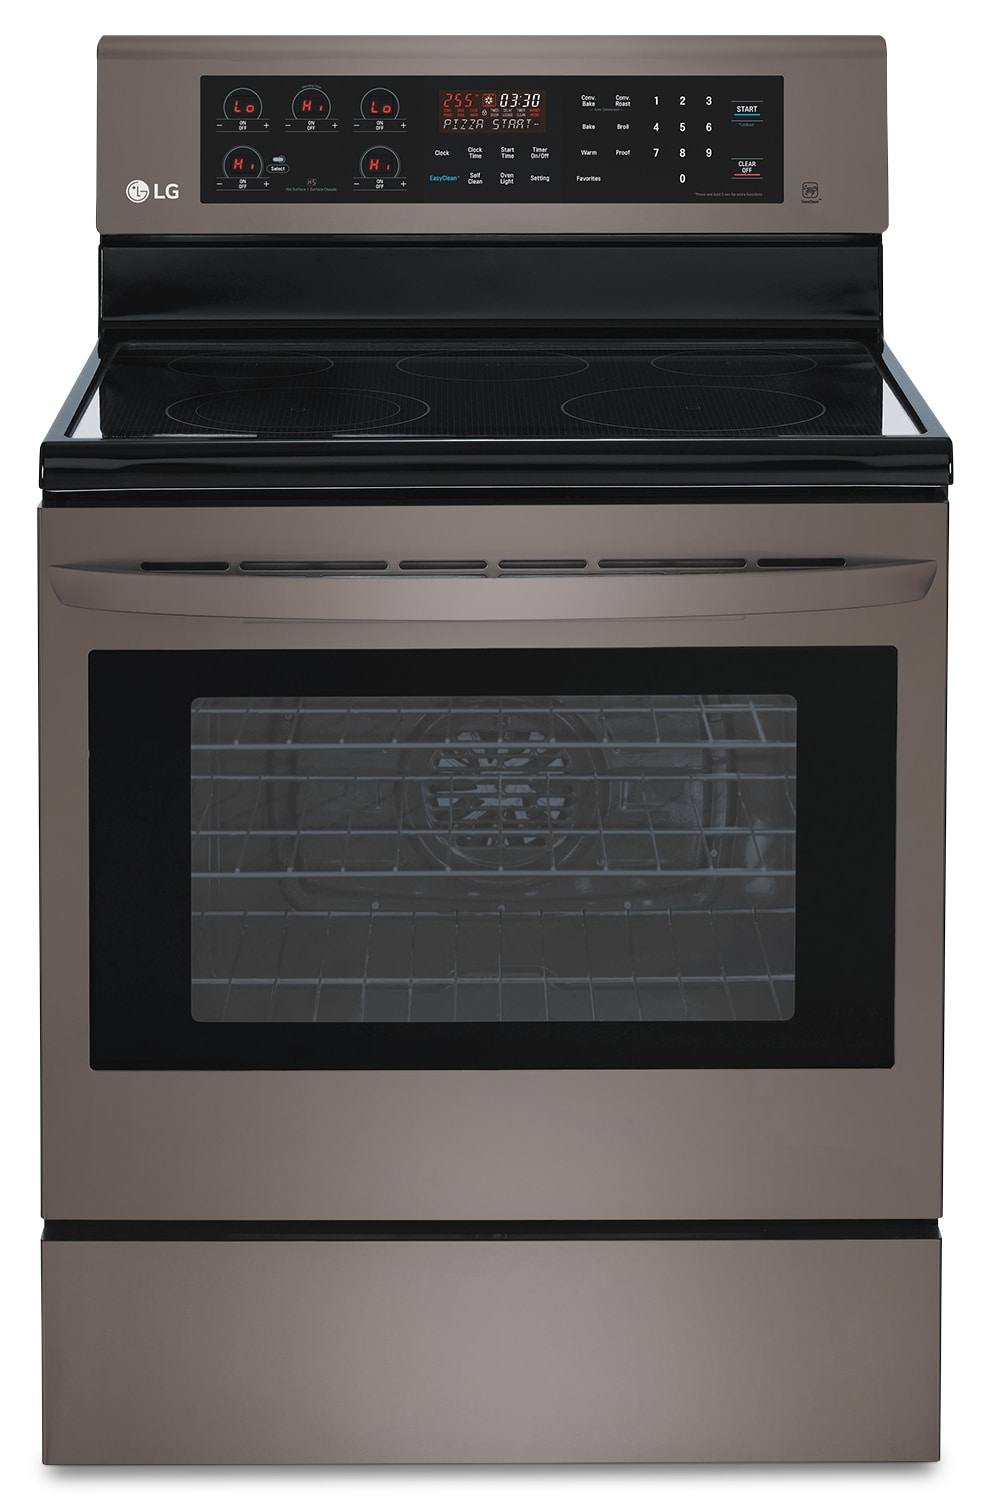 LG 6.3 Cu. Ft. Freestanding Electric Range – Black Stainless Steel LRE6383BD